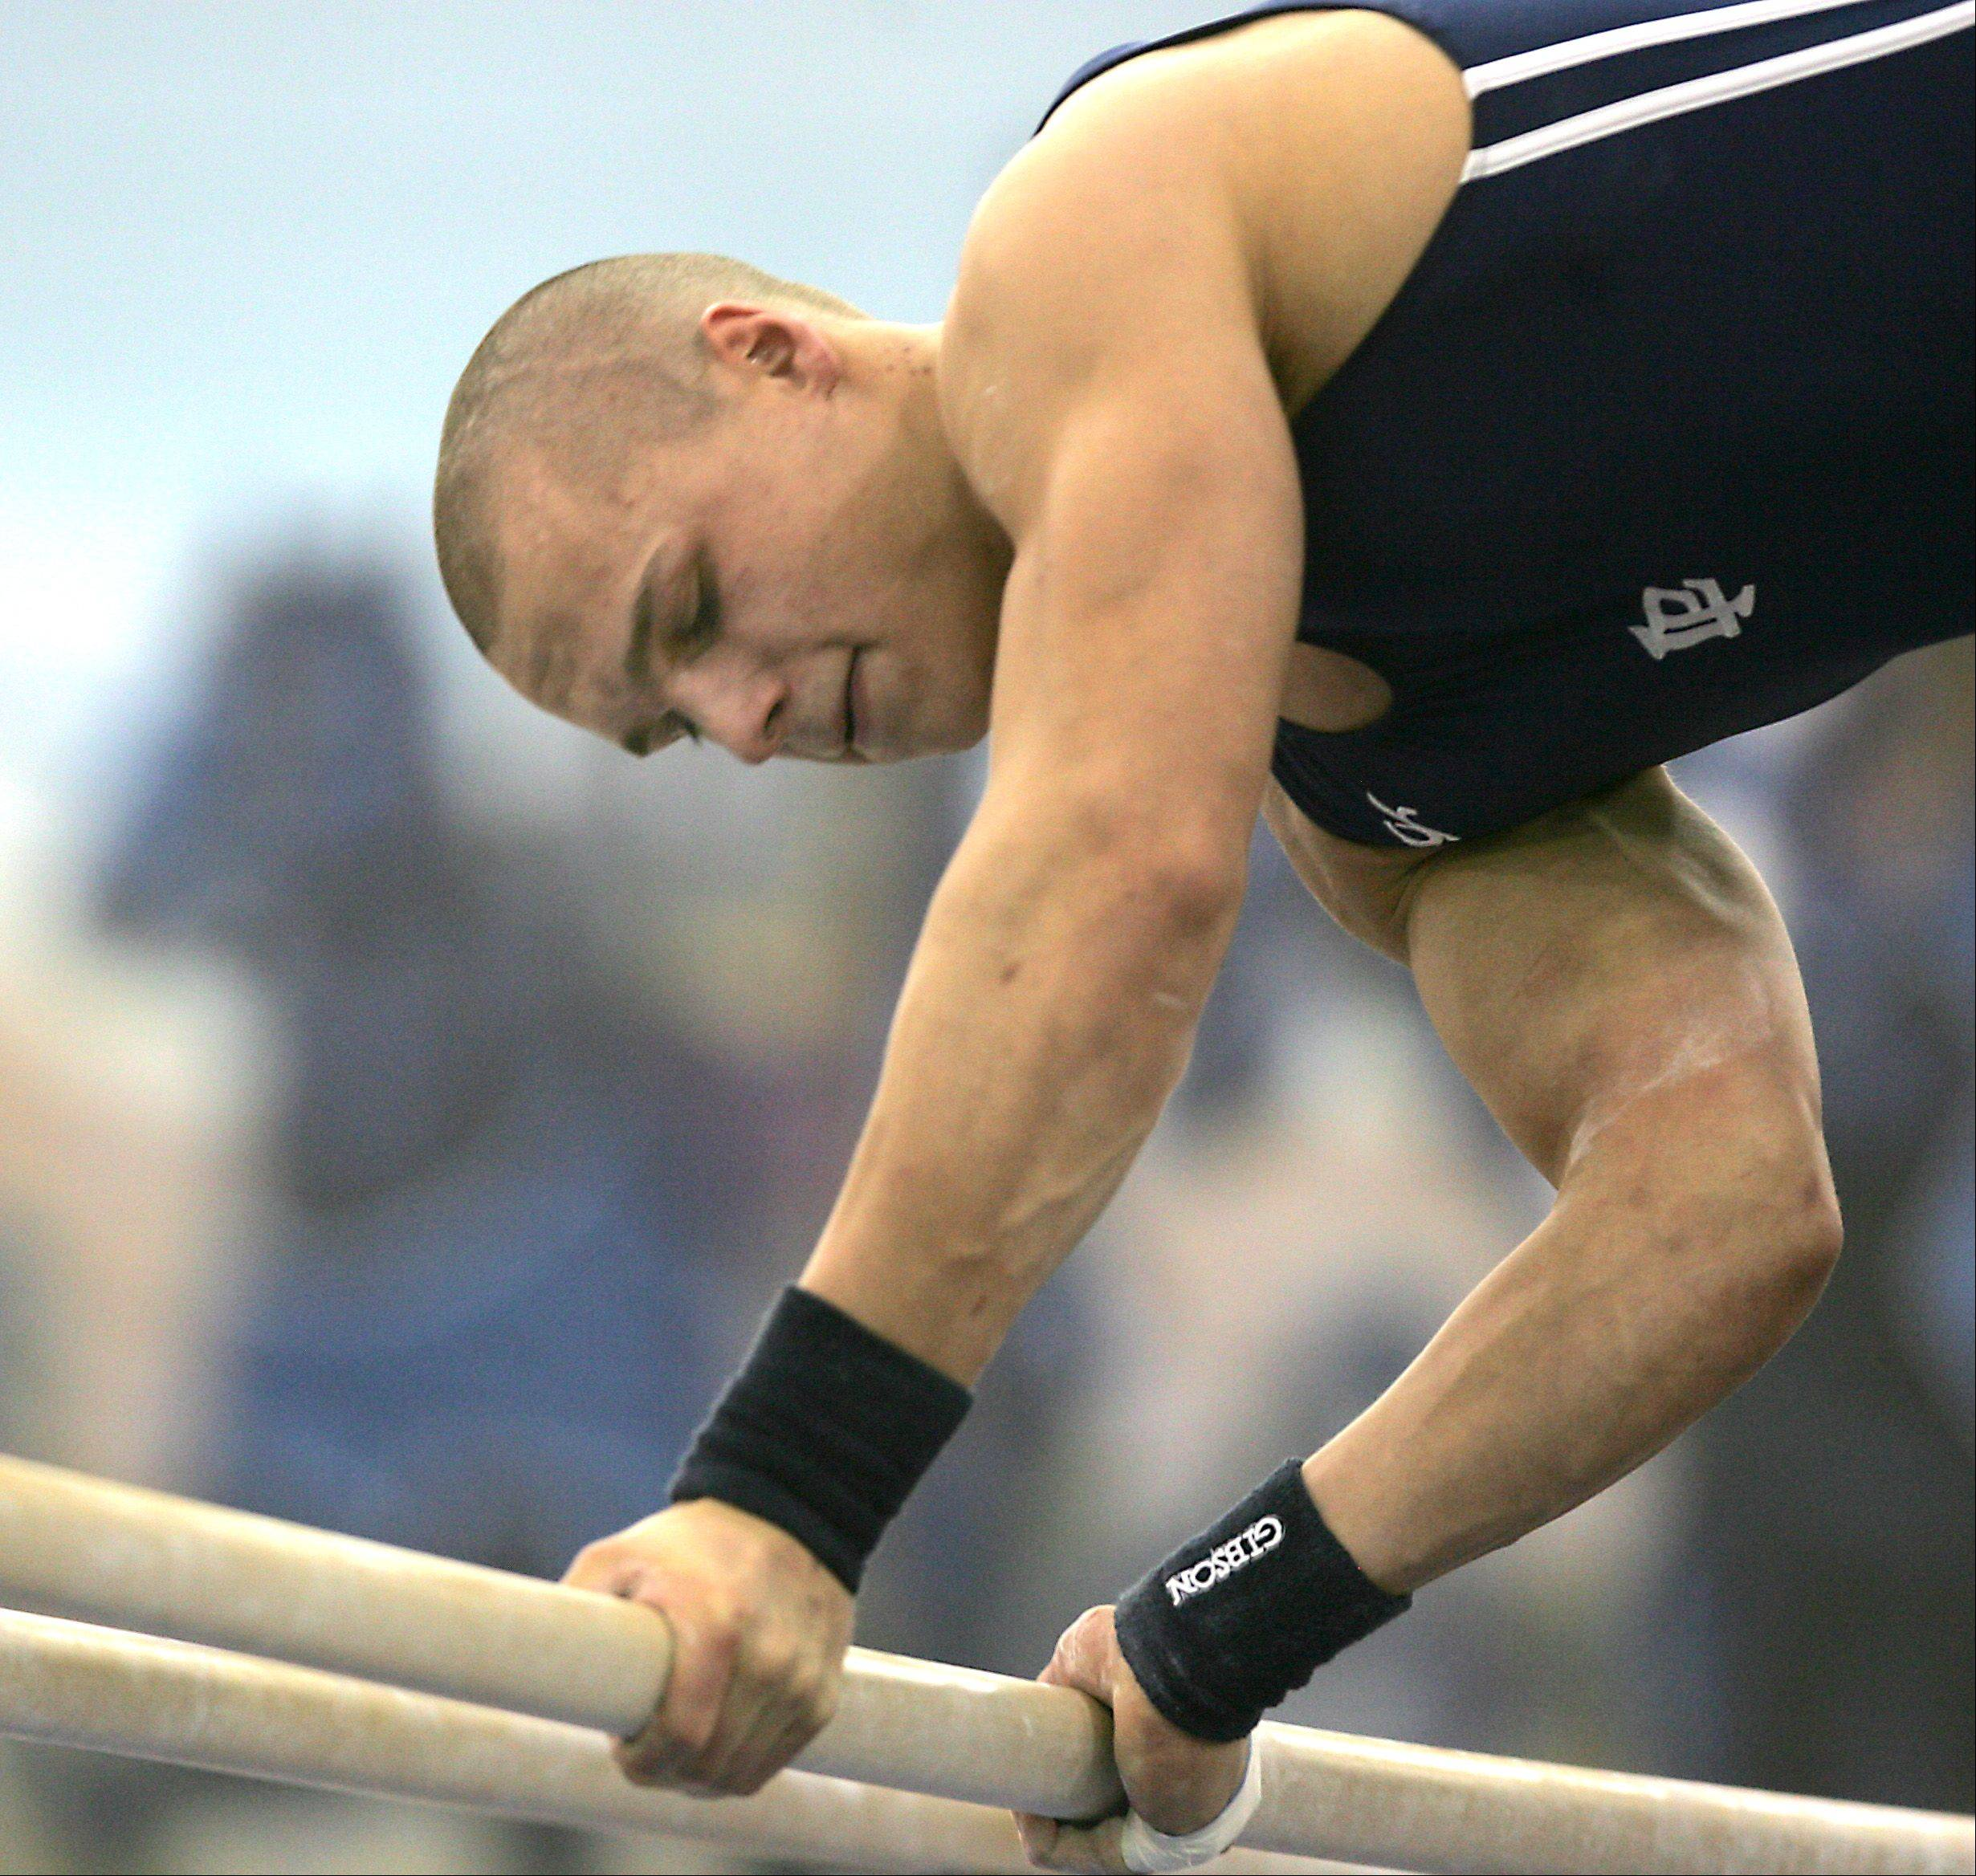 Lake Park's Mac Allen dismounts from his parallel bar routine, during the Ralph Krupke Boys Gymnastics Invitational at Lake Park East High School.